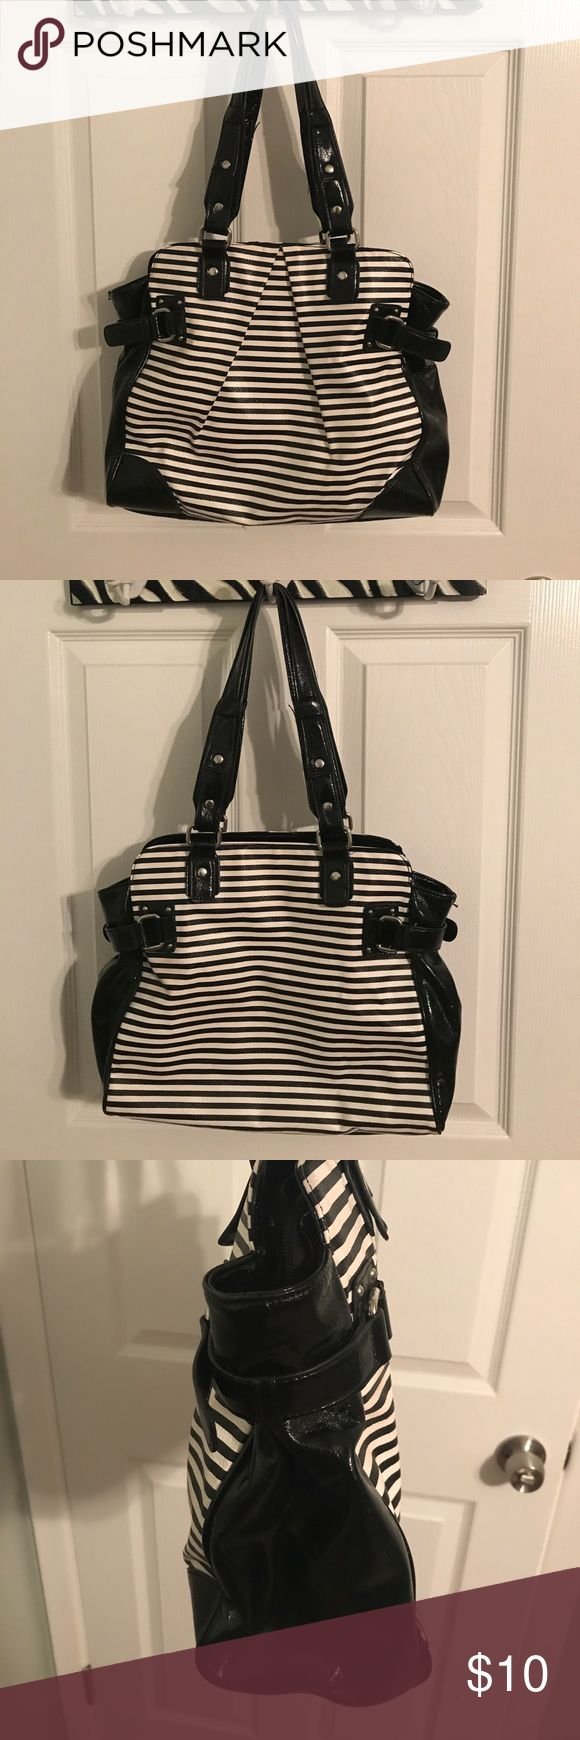 Black and white purse This purse is from New York & Company. Very minimal signs of wear on the handles and edges of the purse. New York & Company Bags Shoulder Bags